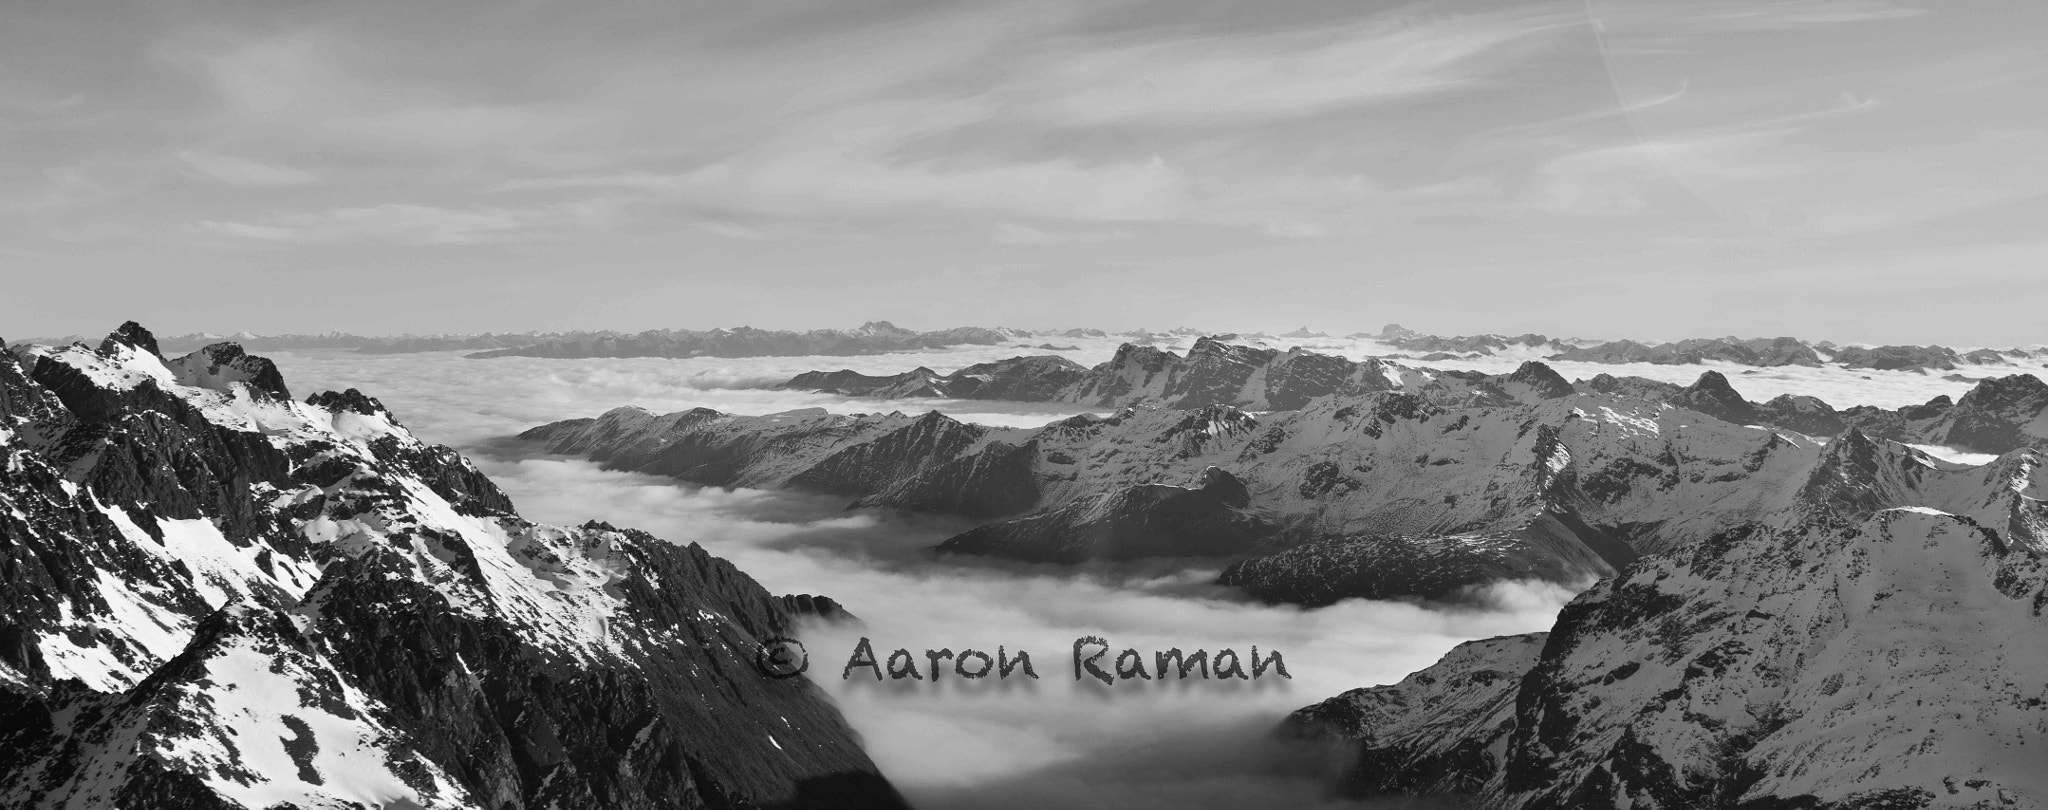 Photograph Mountains of heaven and earth by Aaron Raman on 500px